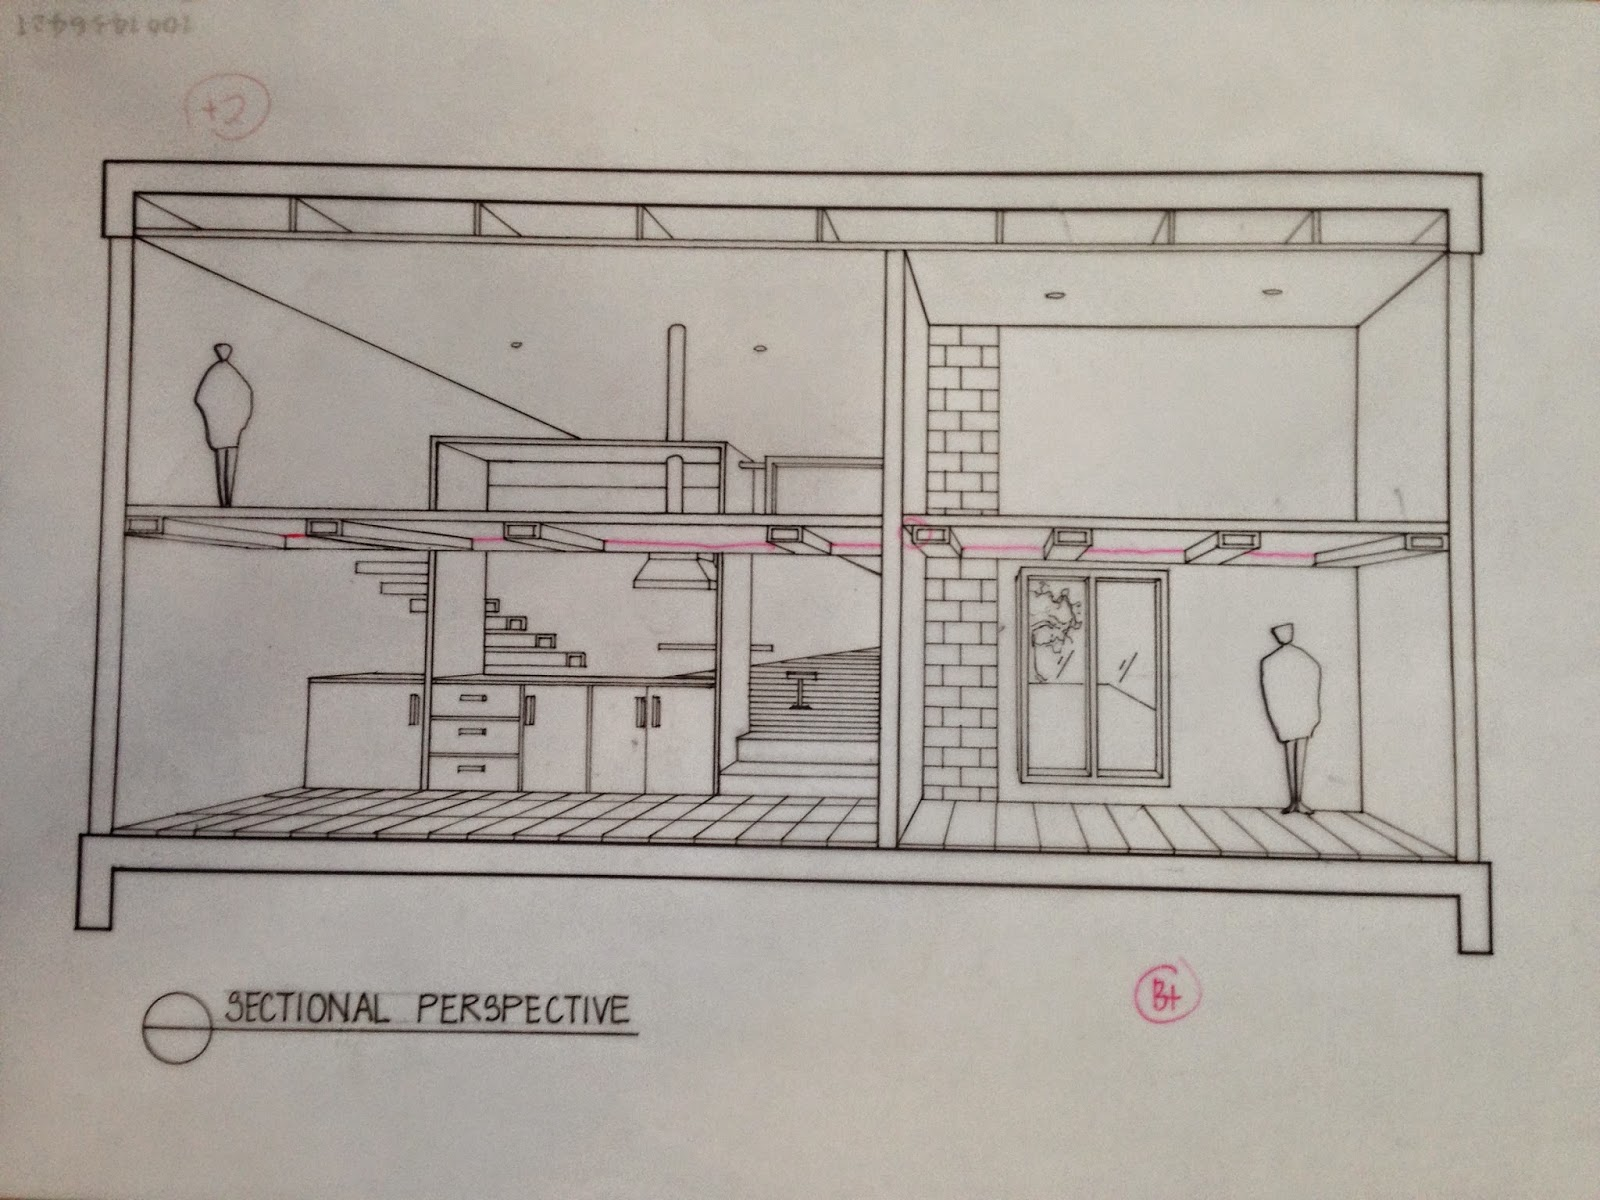 Sectional Perspective Drawing & With An Equally plex Set